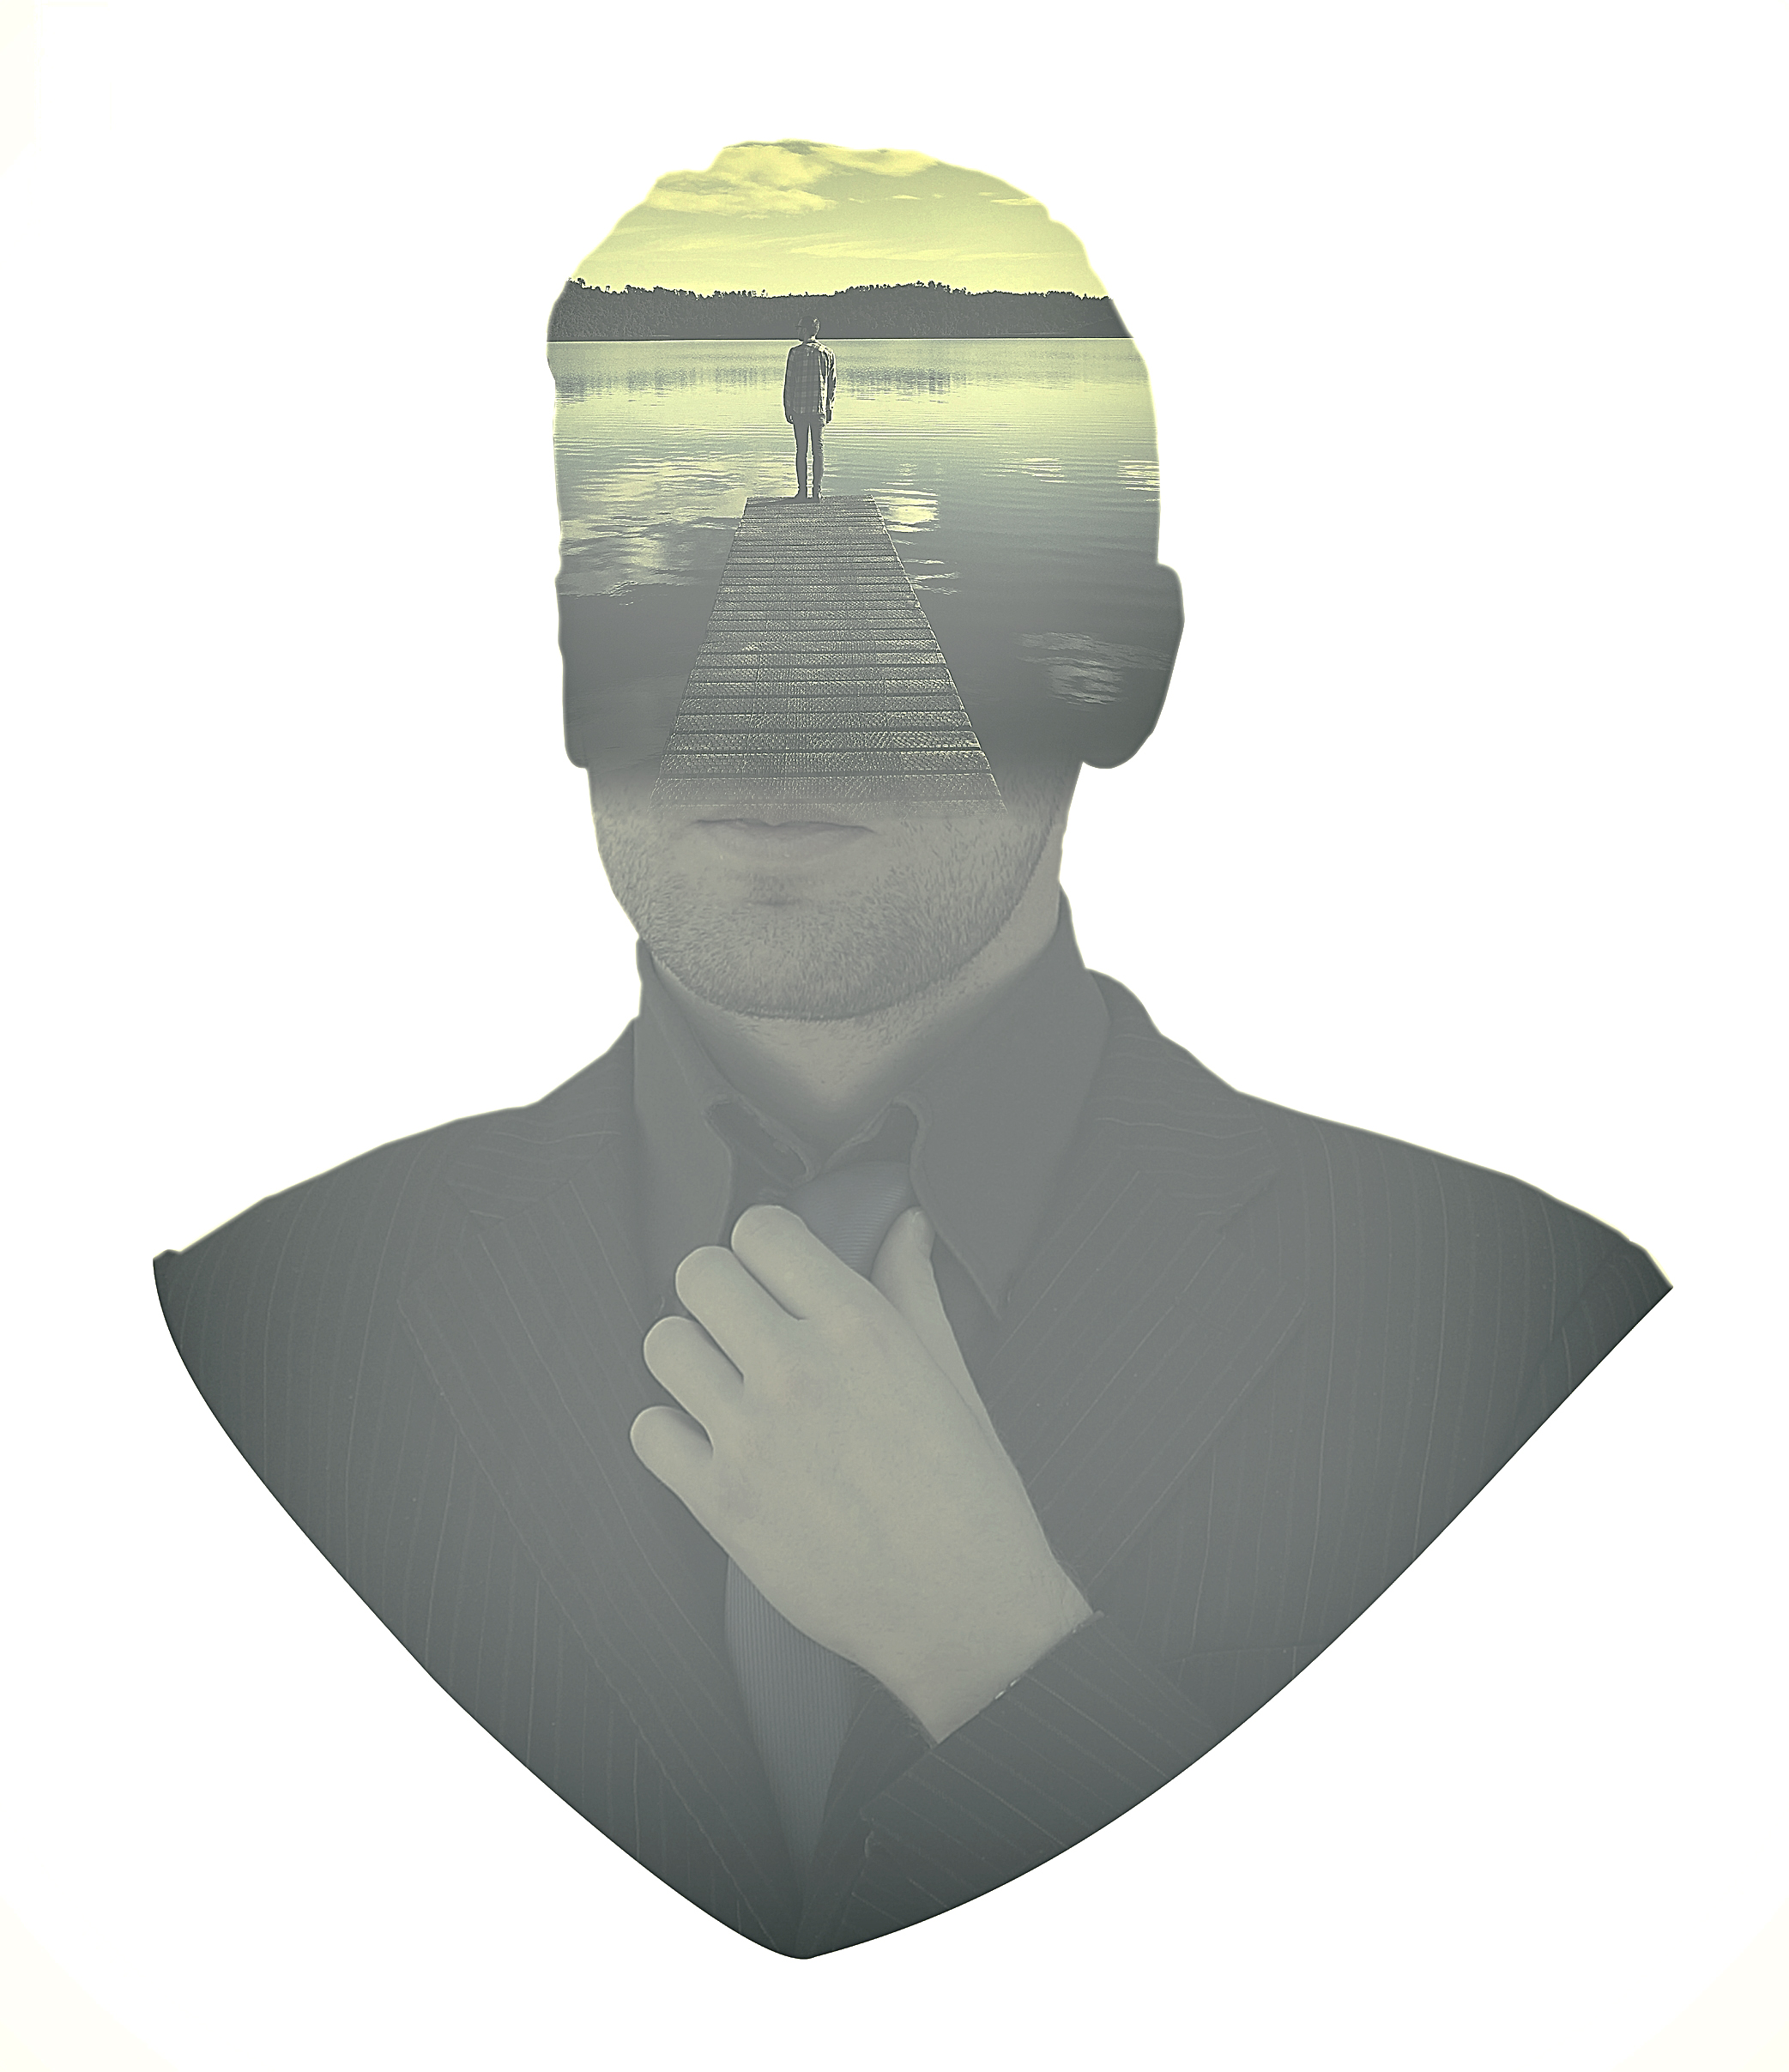 People - Businessman Aspirations - Double Exposure Effect, African, Planning, Smirking, Skyline, HQ Photo